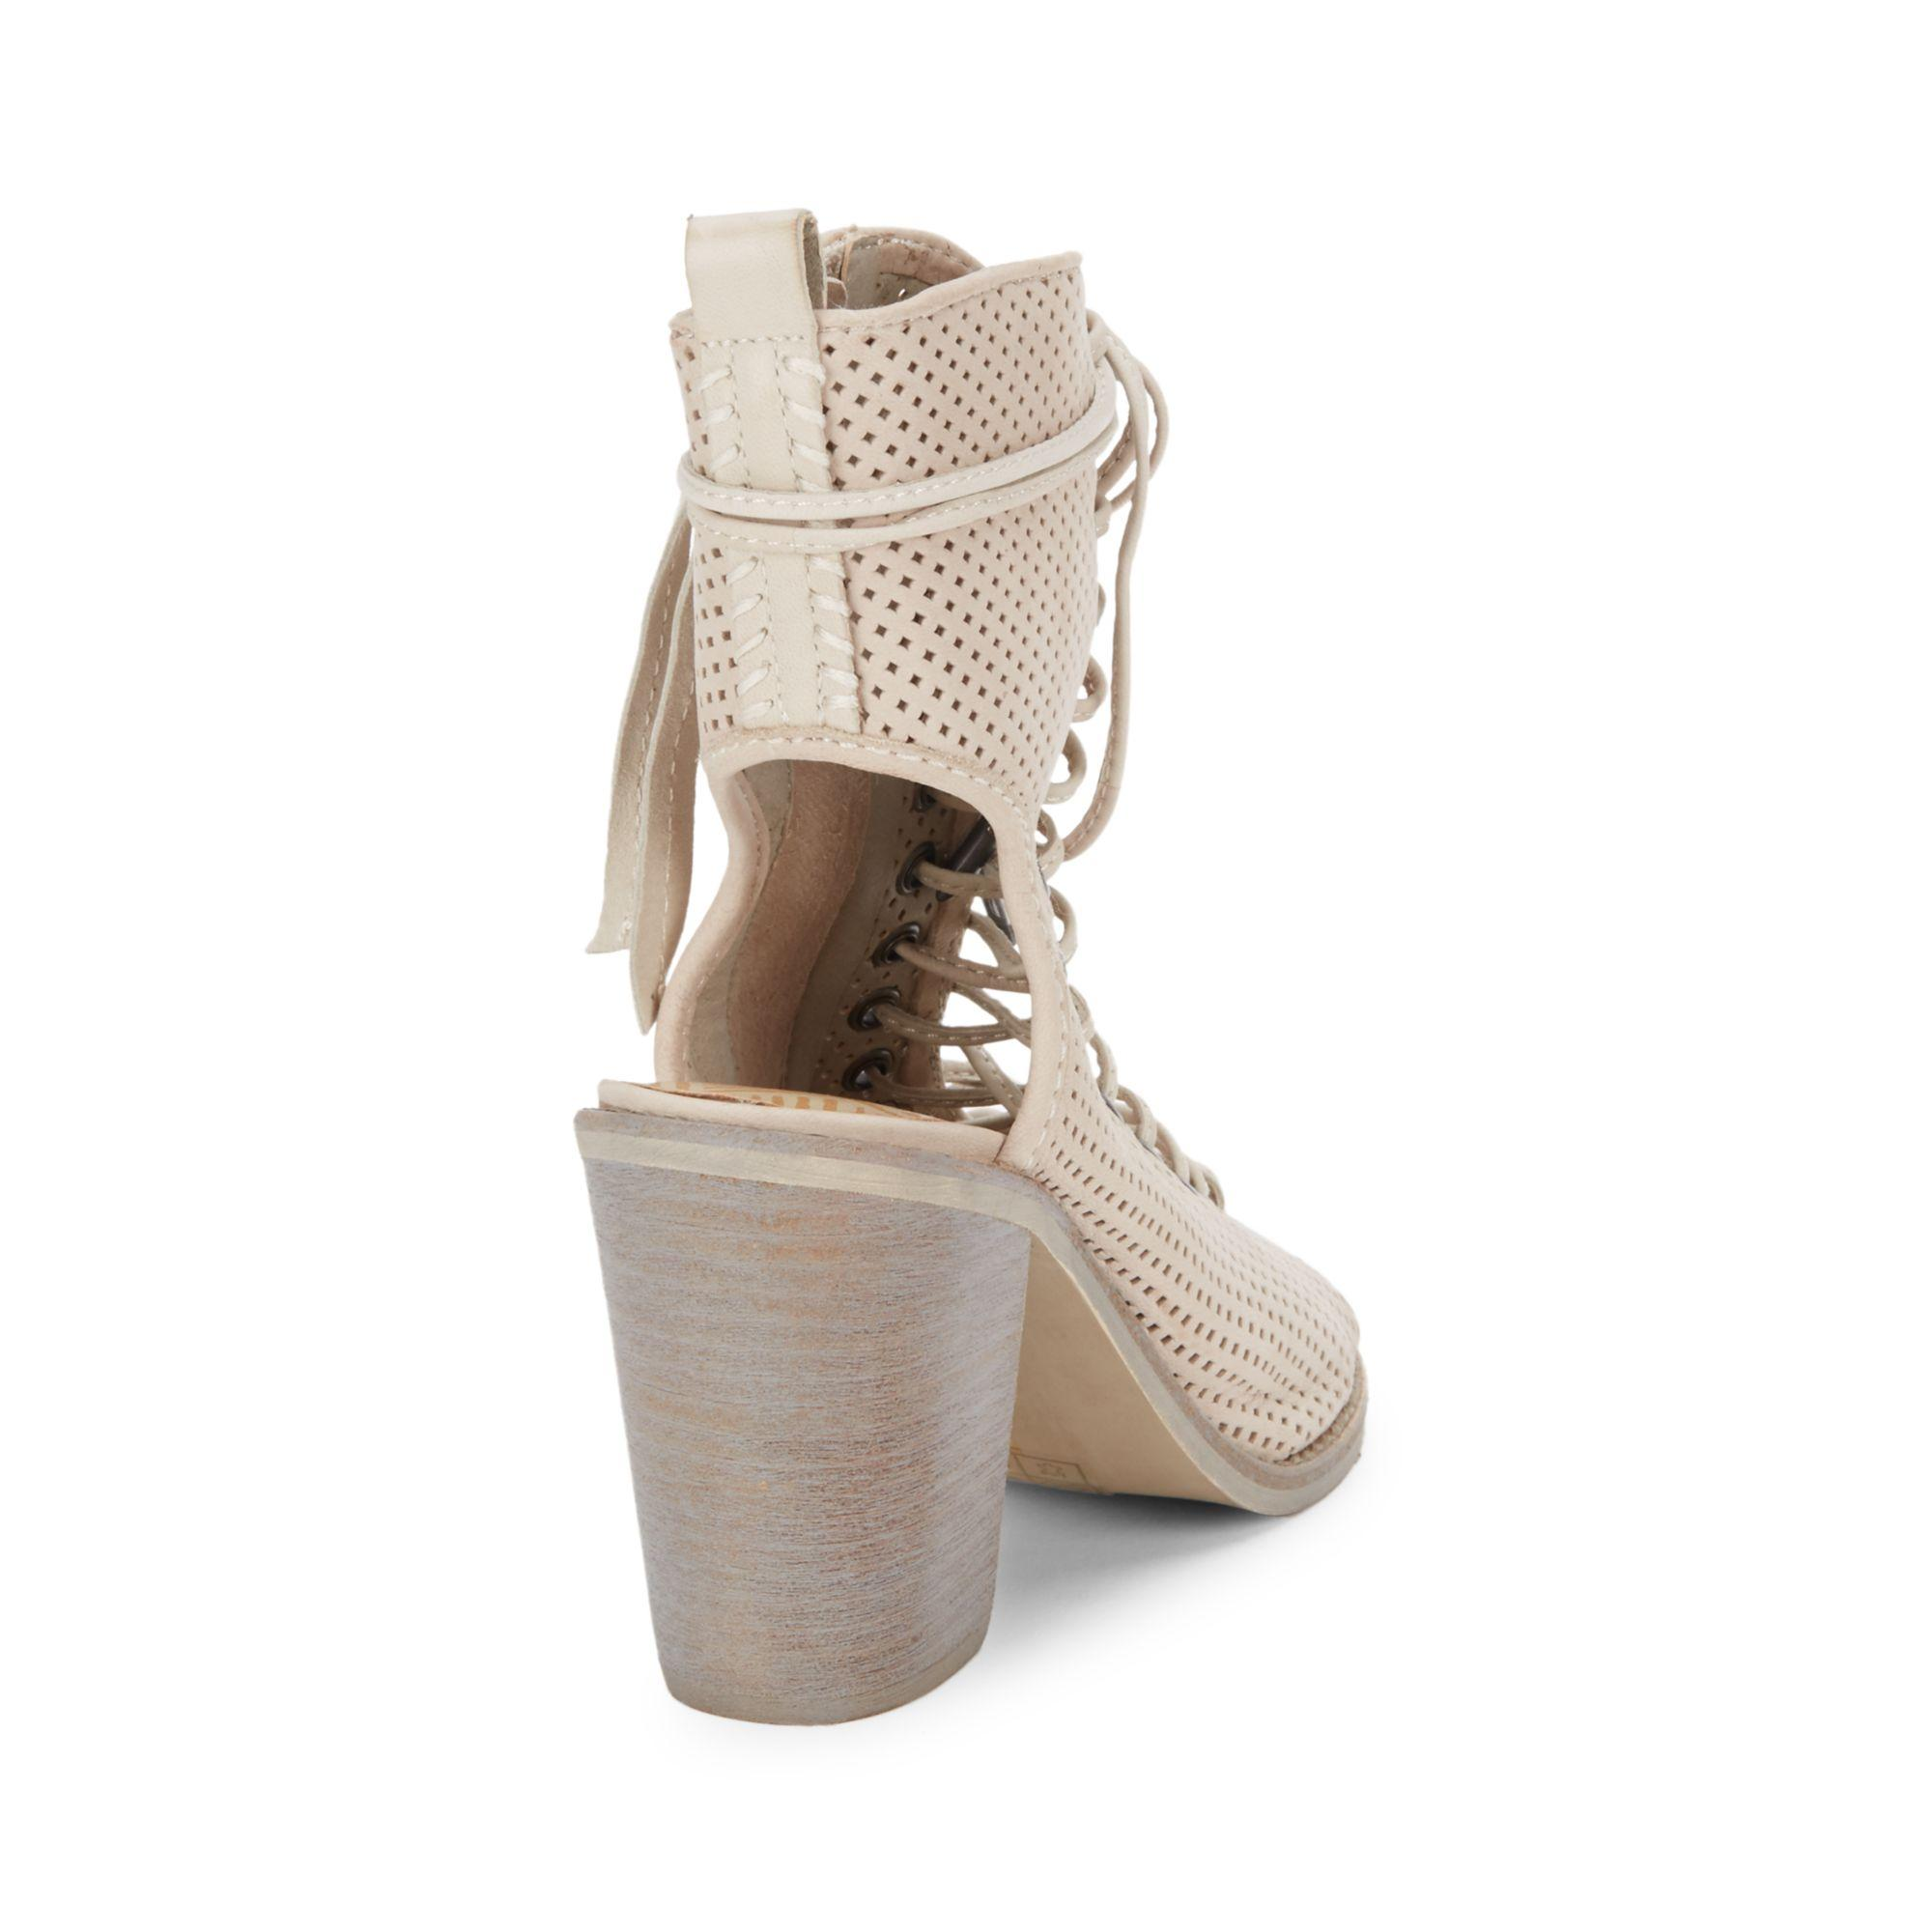 Dolce Vita Lira Sand Perforated Leather Ankle Boots in Black